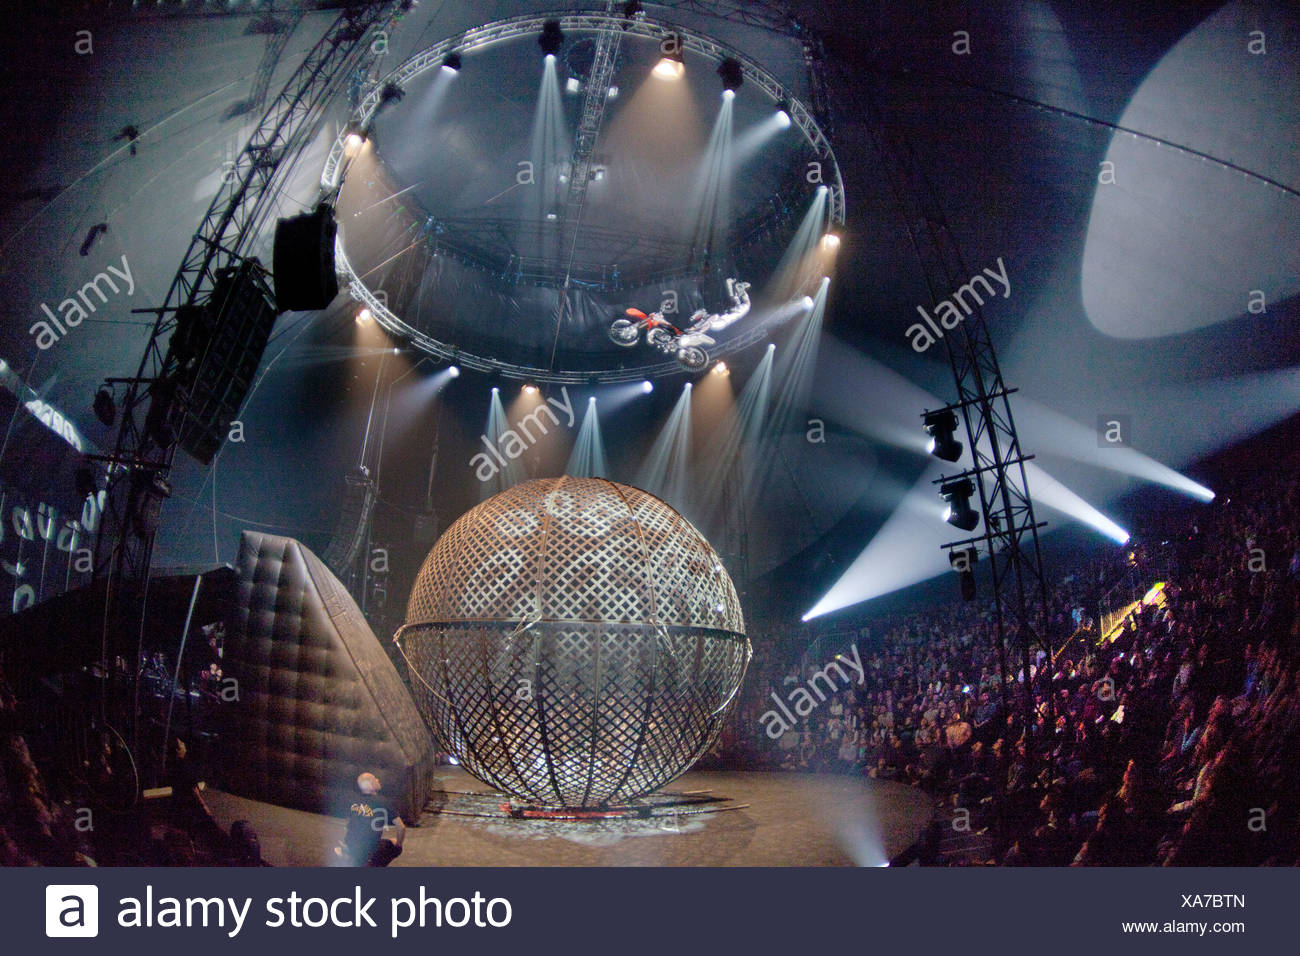 AirFours freestyle motorcycle act, FlicFlac Christmas Circus, premiere of Schrille Nacht, eilige Nacht, Westfalia Hall, Dortmund - Stock Image